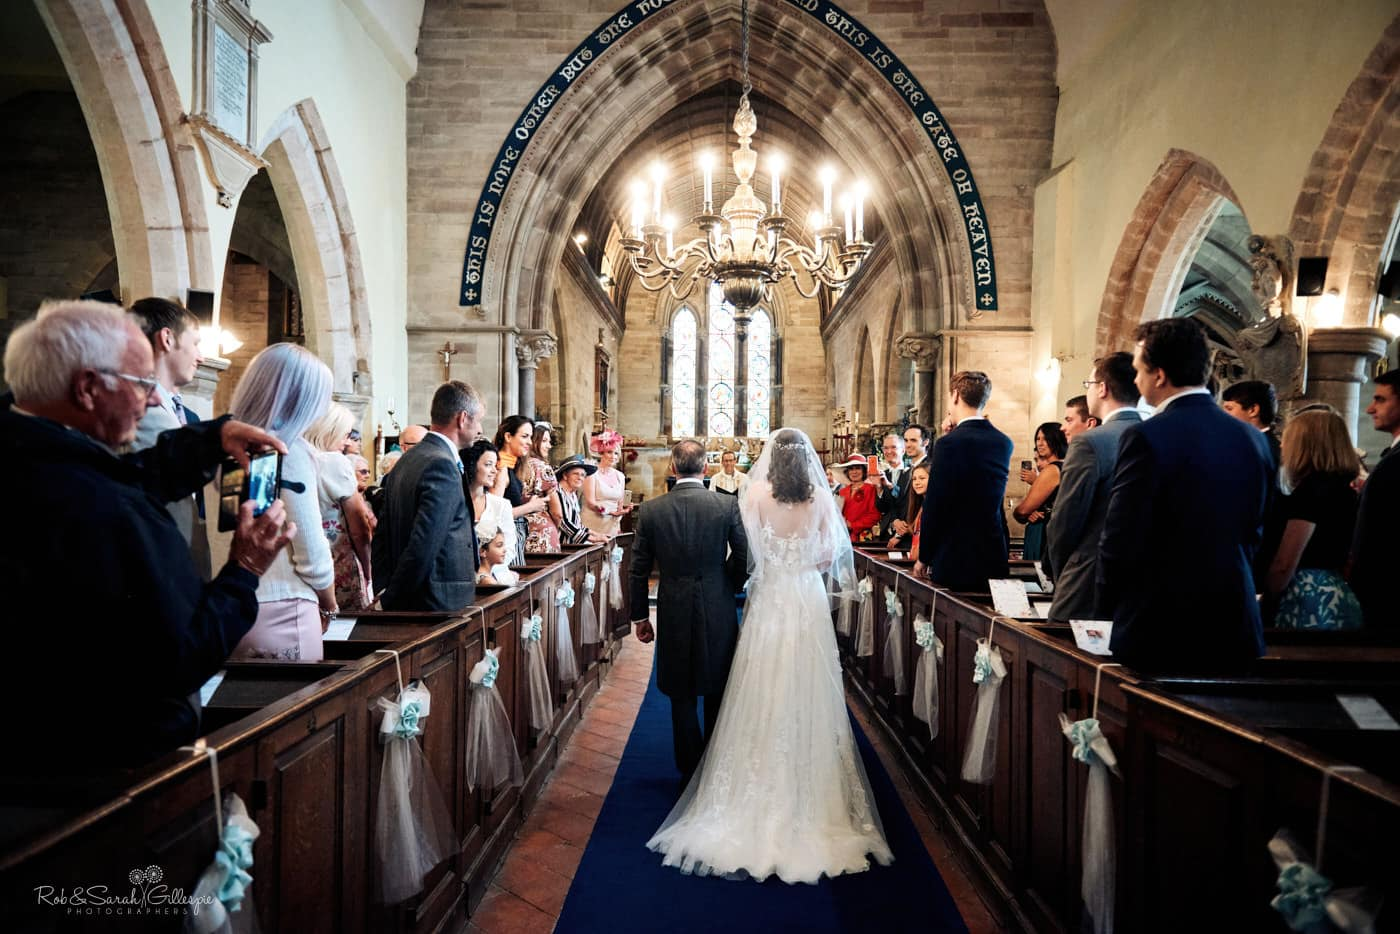 Bride and dad walk up aisle at Hanbury Church for wedding ceremony